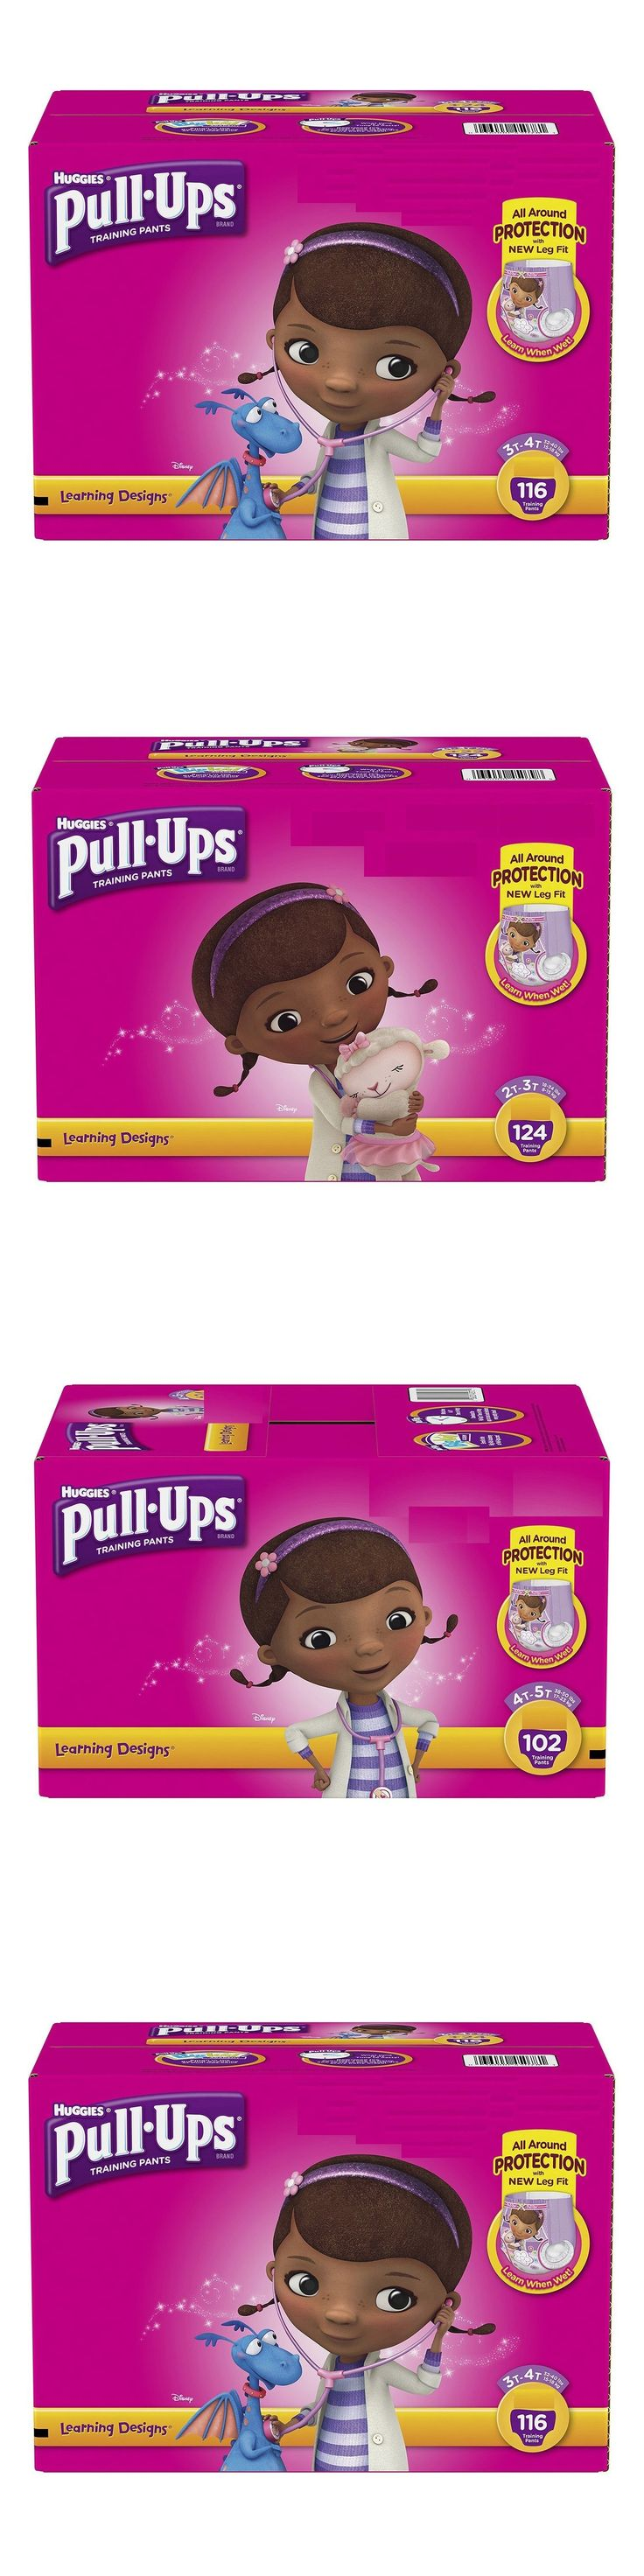 Disposable Diapers 15559: Huggies Pull-Ups Training Pants For Girls Pick Size - Free Expedited Shipping -> BUY IT NOW ONLY: $42.99 on eBay!